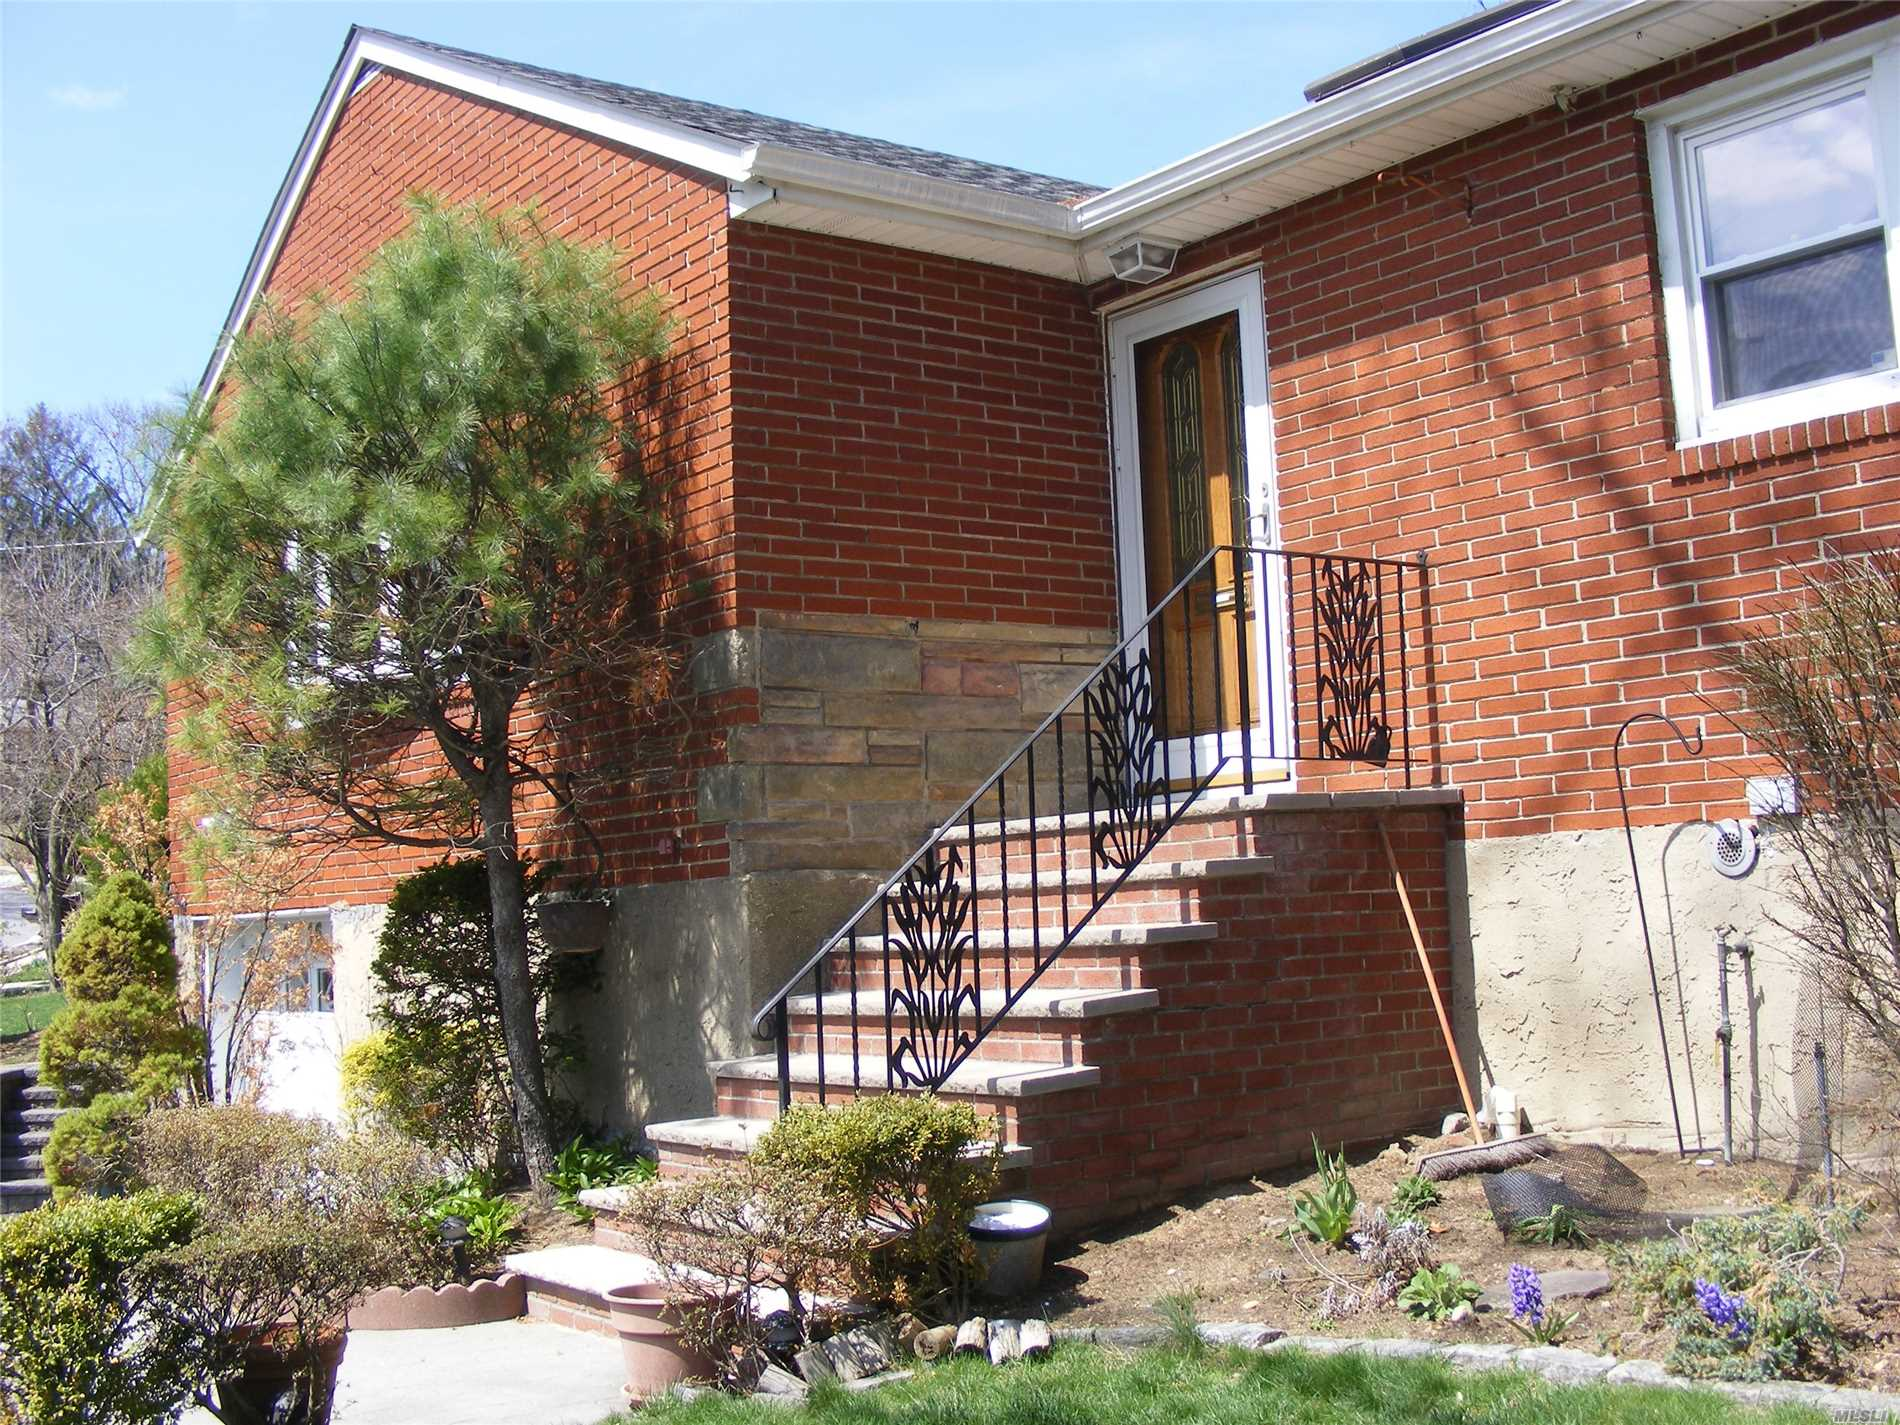 Beautiful House For Rent In The Heart Of Little Neck Hills. Newly Renovated 3Br, 3 Full Bath.New Kitchen. Huge Lr, Master Br In 1st Floor. All Rooms With Windows. Finished Basement With Big Family Room, Large Storage Rooms, Summer Kitchen And Full Bath. Close To Northern Blvd Shopping Dining, And City Bus/Manhattan Express Bus. Walk To Lirr Station. Ps 94, Jr.Hs 67.Fis